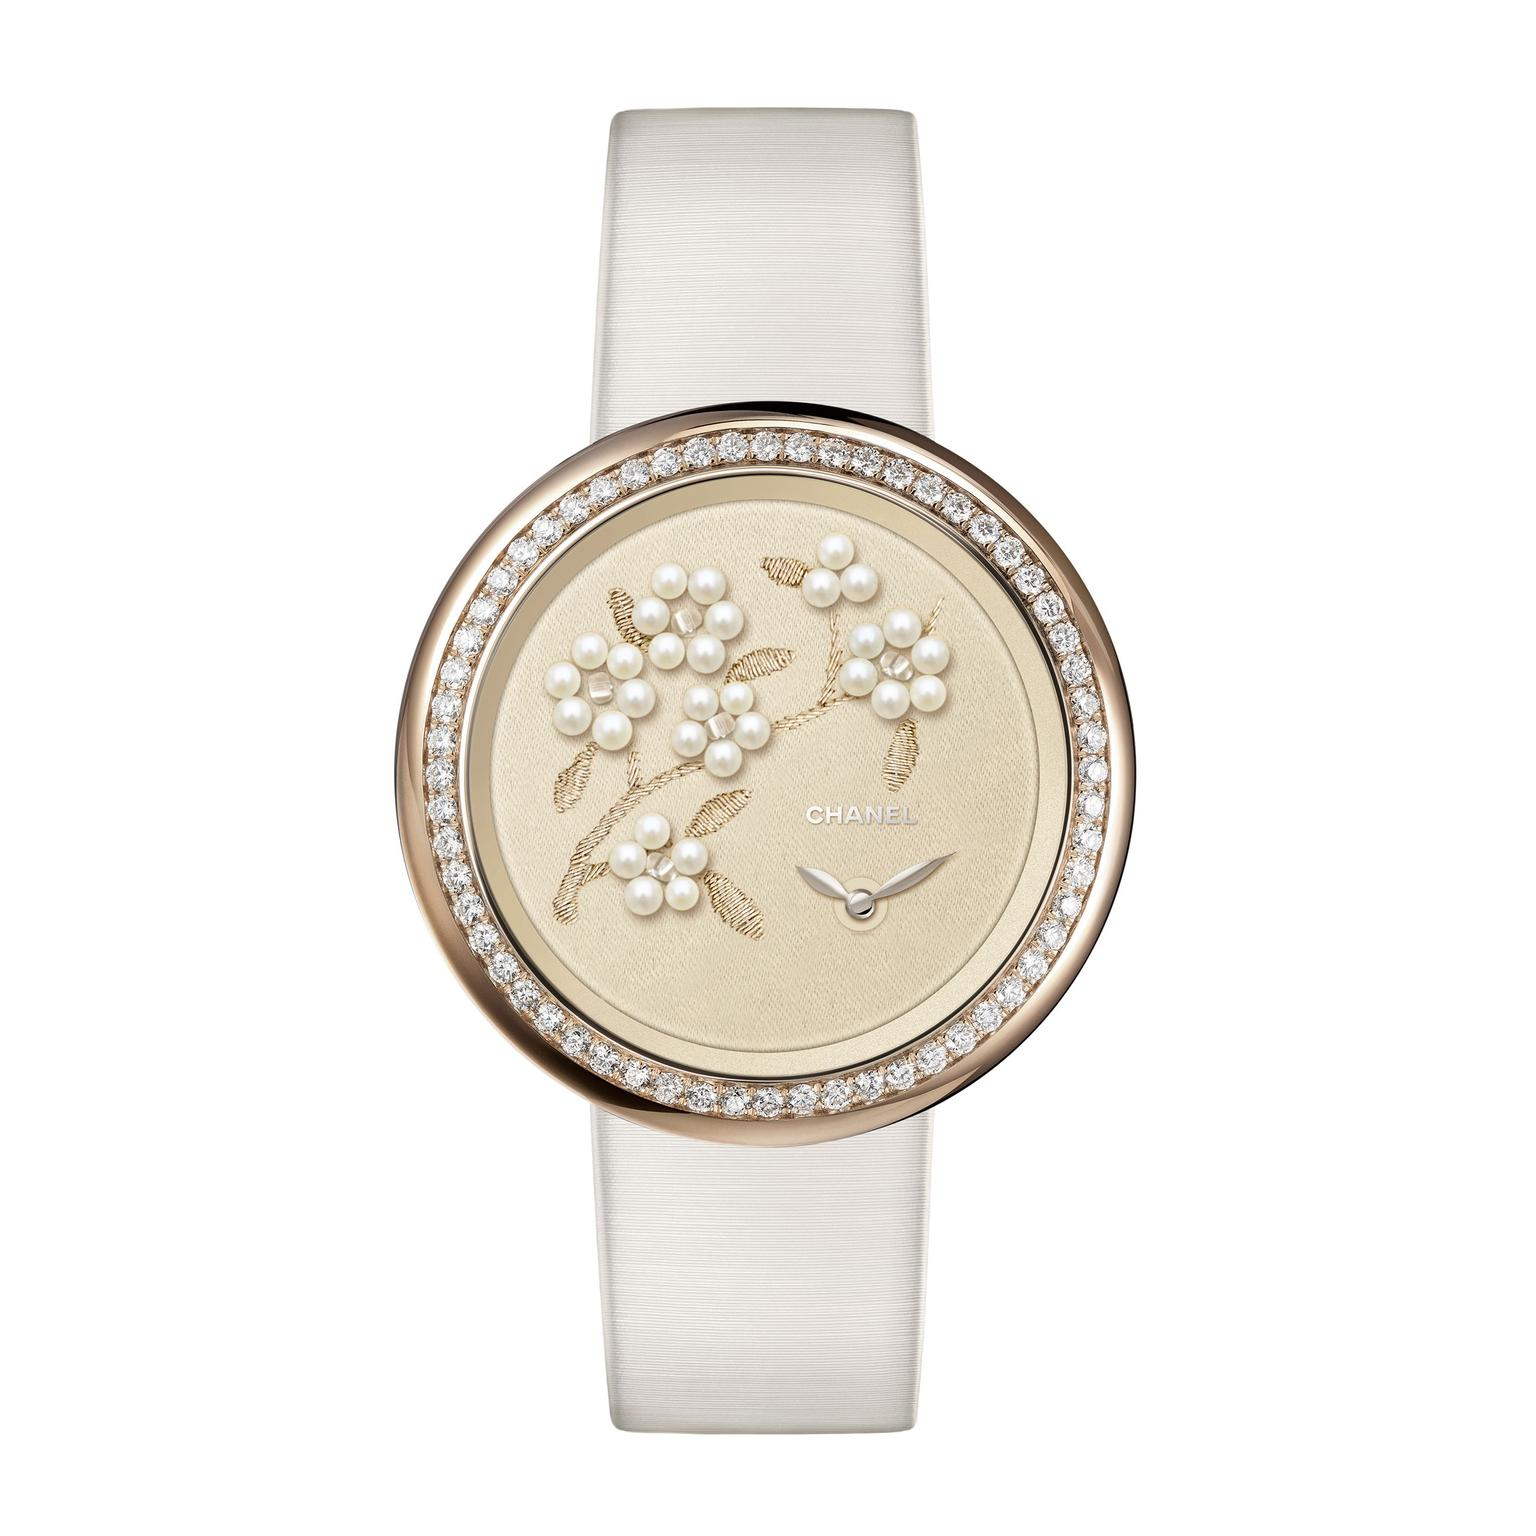 Mademoiselle priv coromandel glyptic watch chanel the jewellery editor for Pearl watches